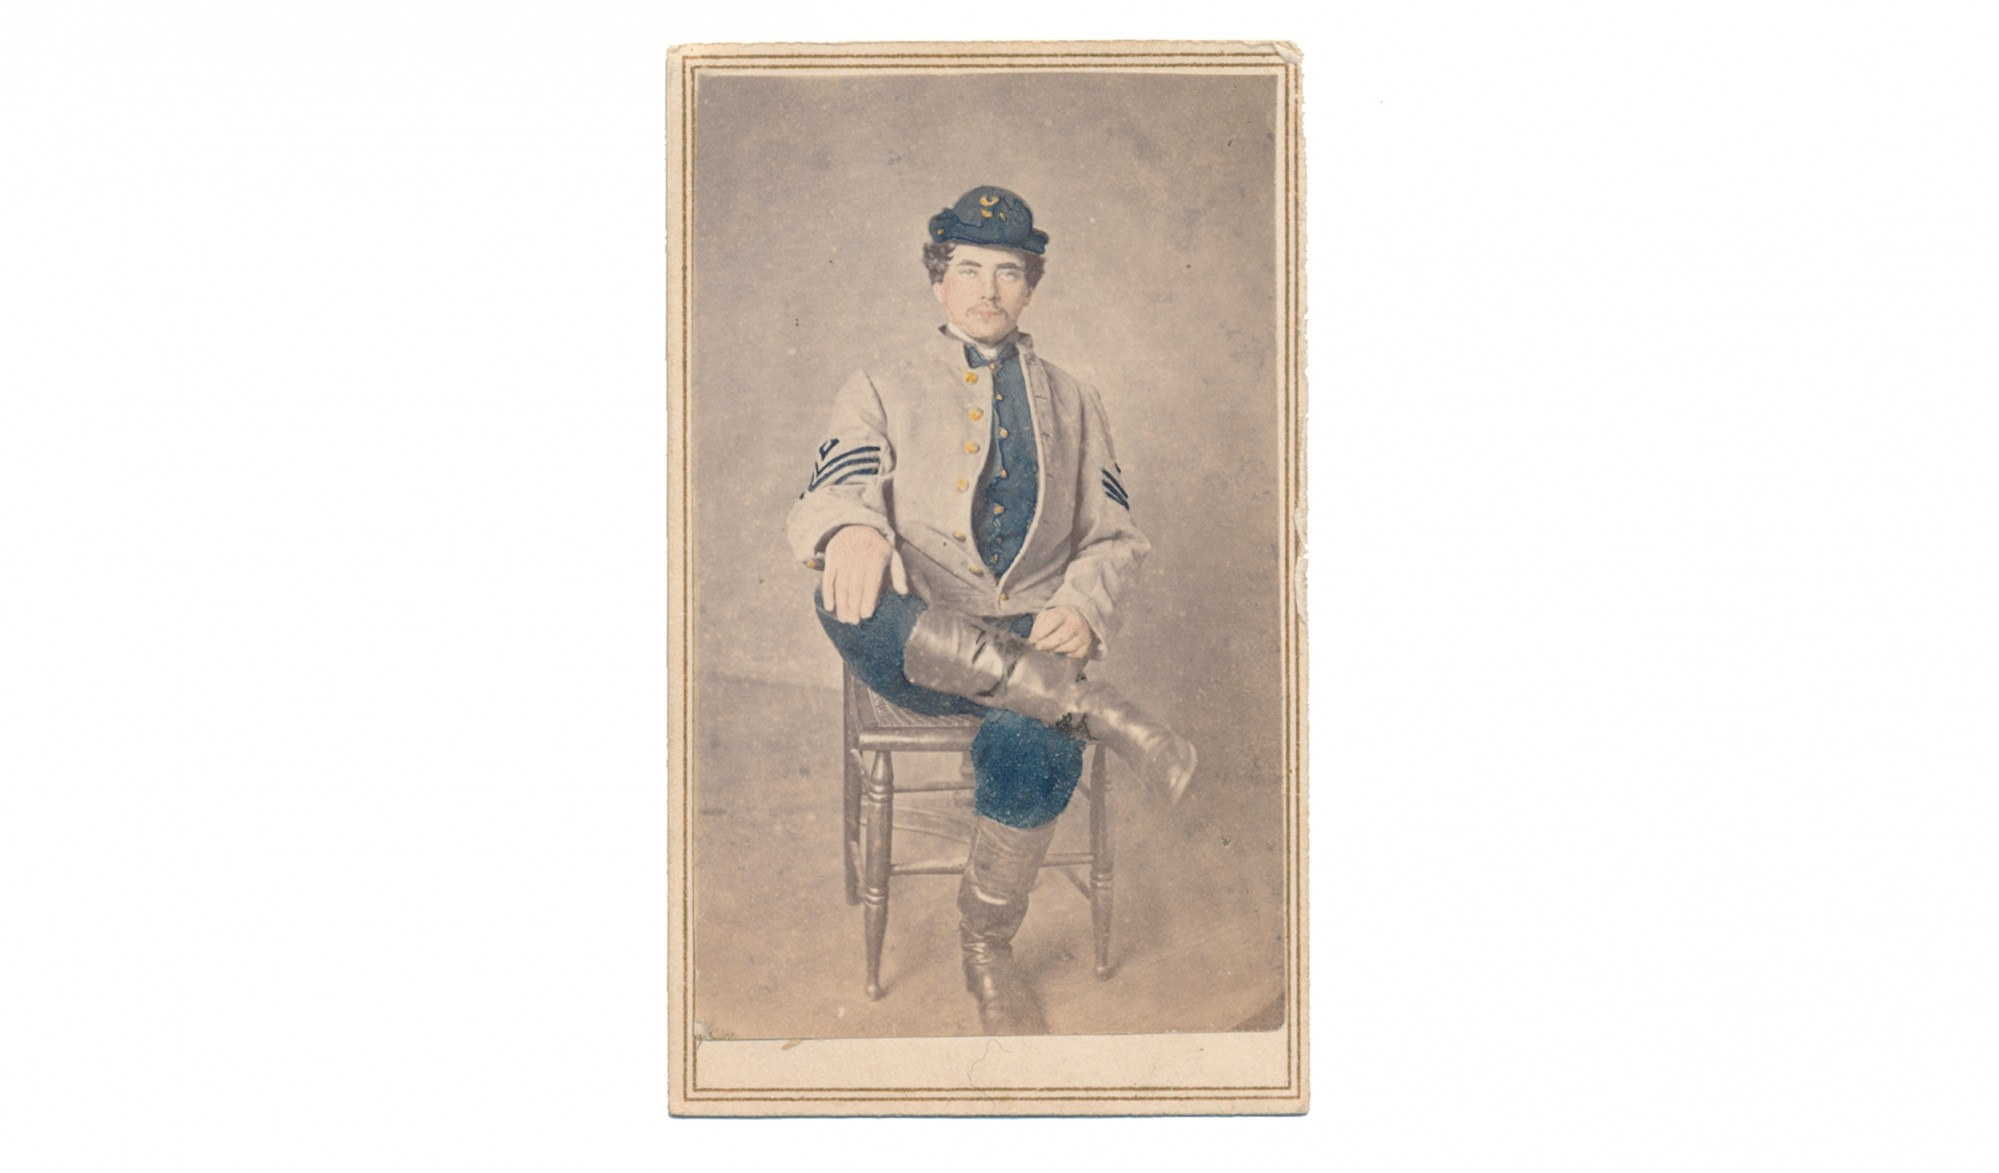 CDV OF UNIDENTIFIED CONFEDERATE SOLDIER